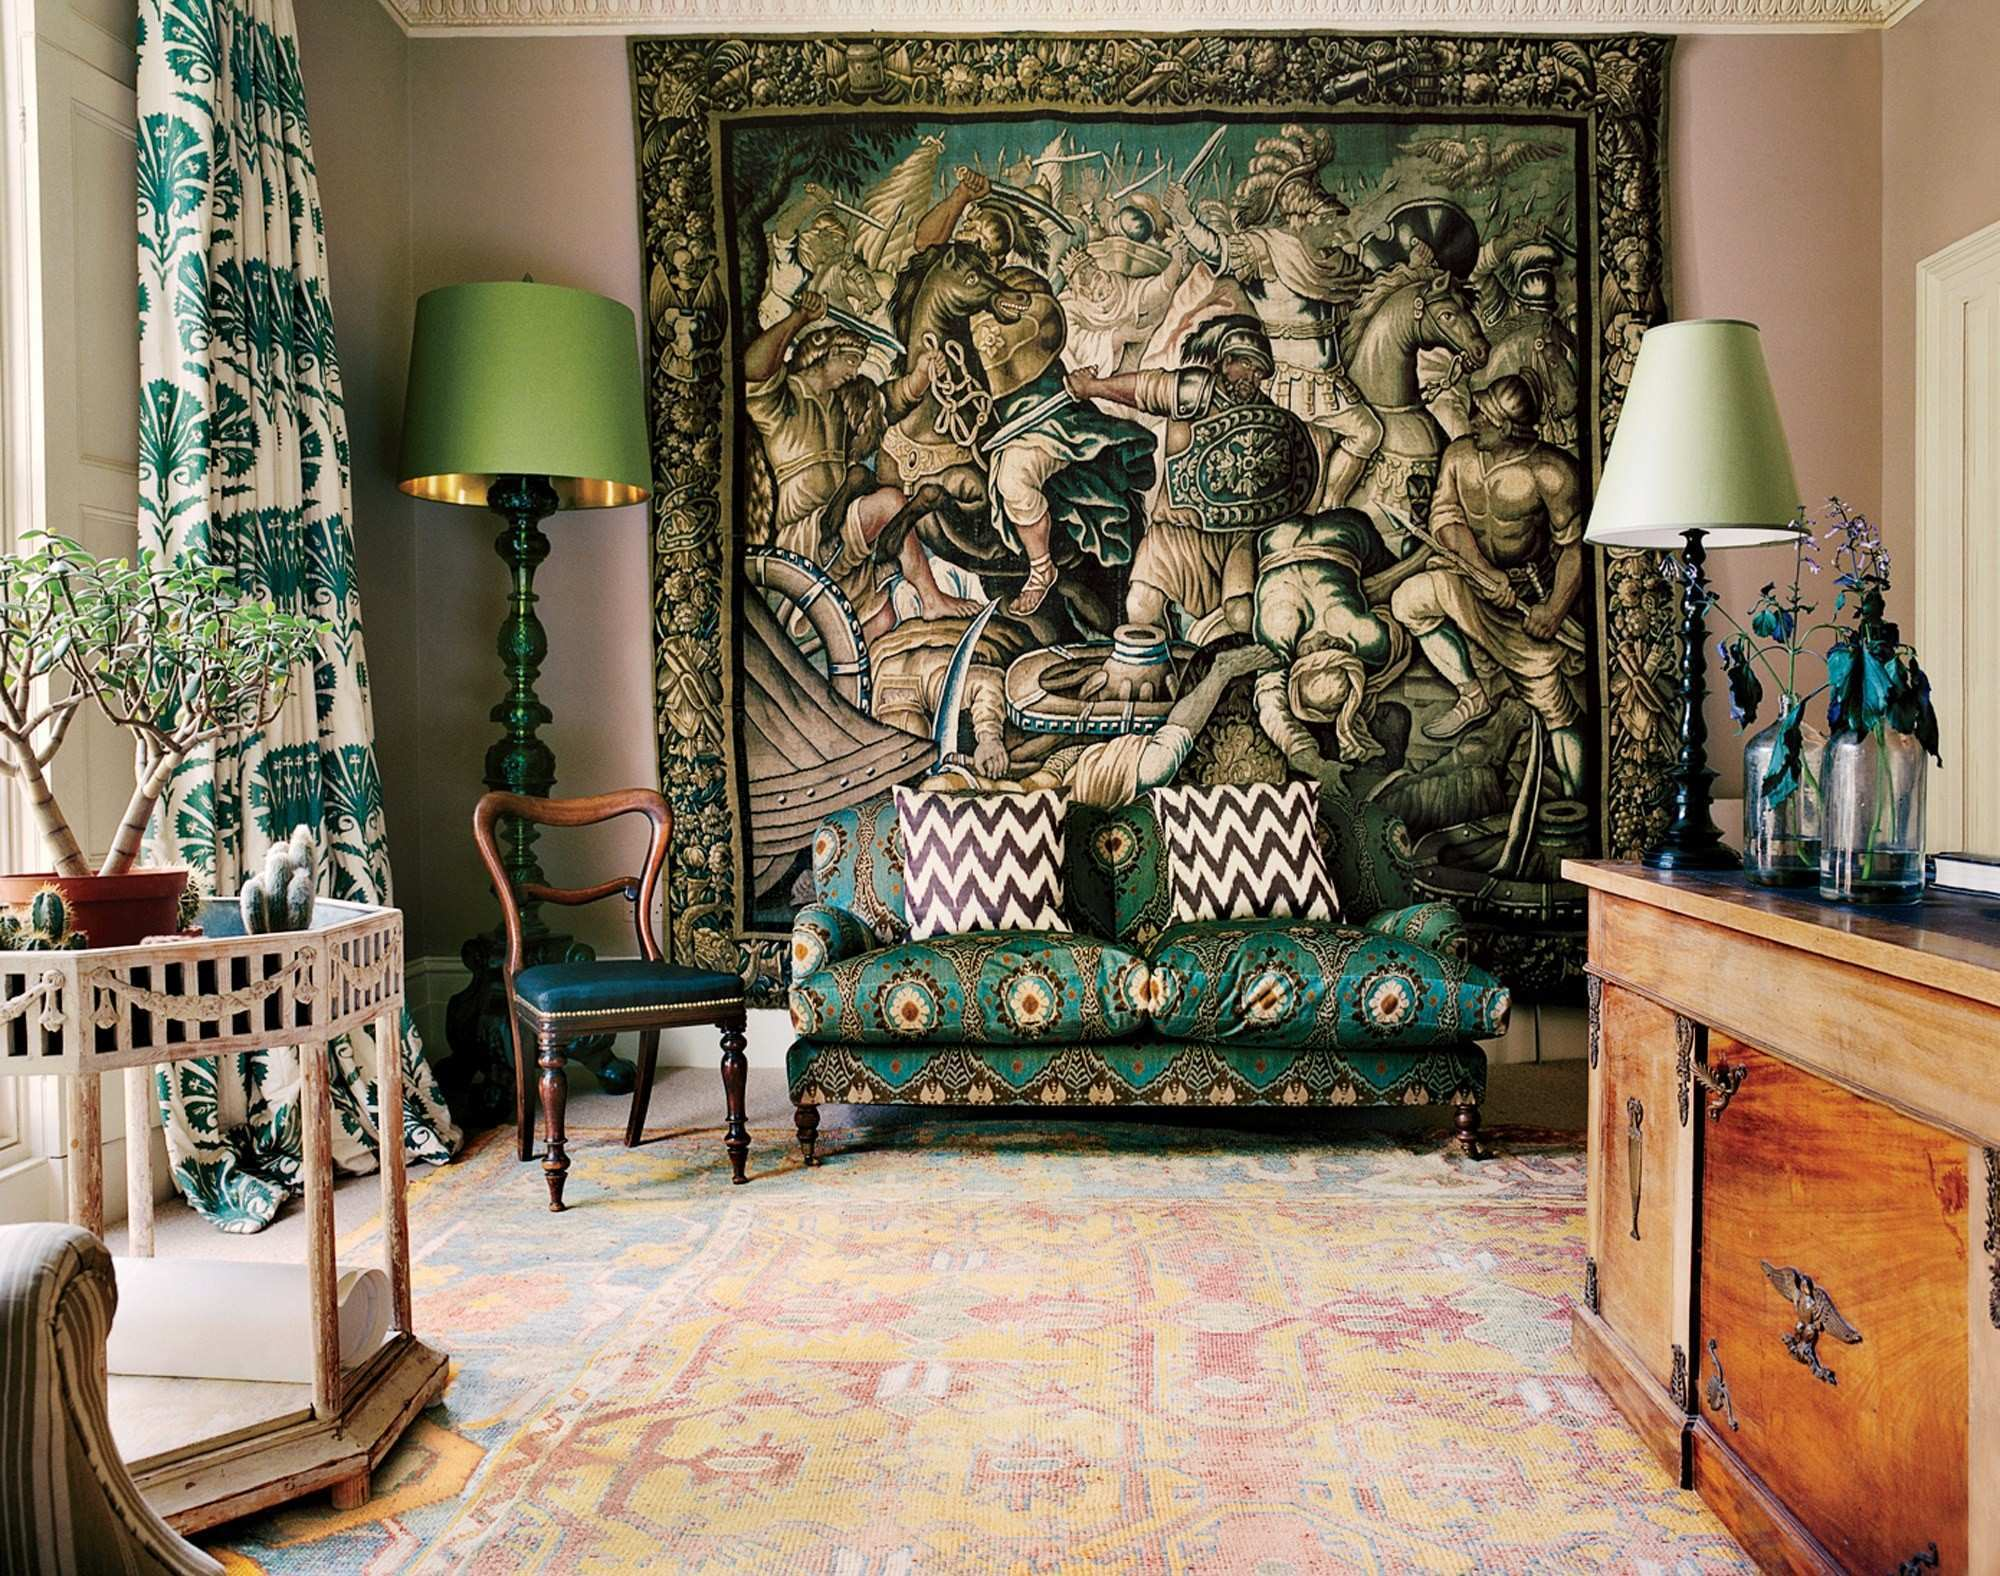 10 Home Decor & Interior Design Trends to Look for in 2017 Vogue